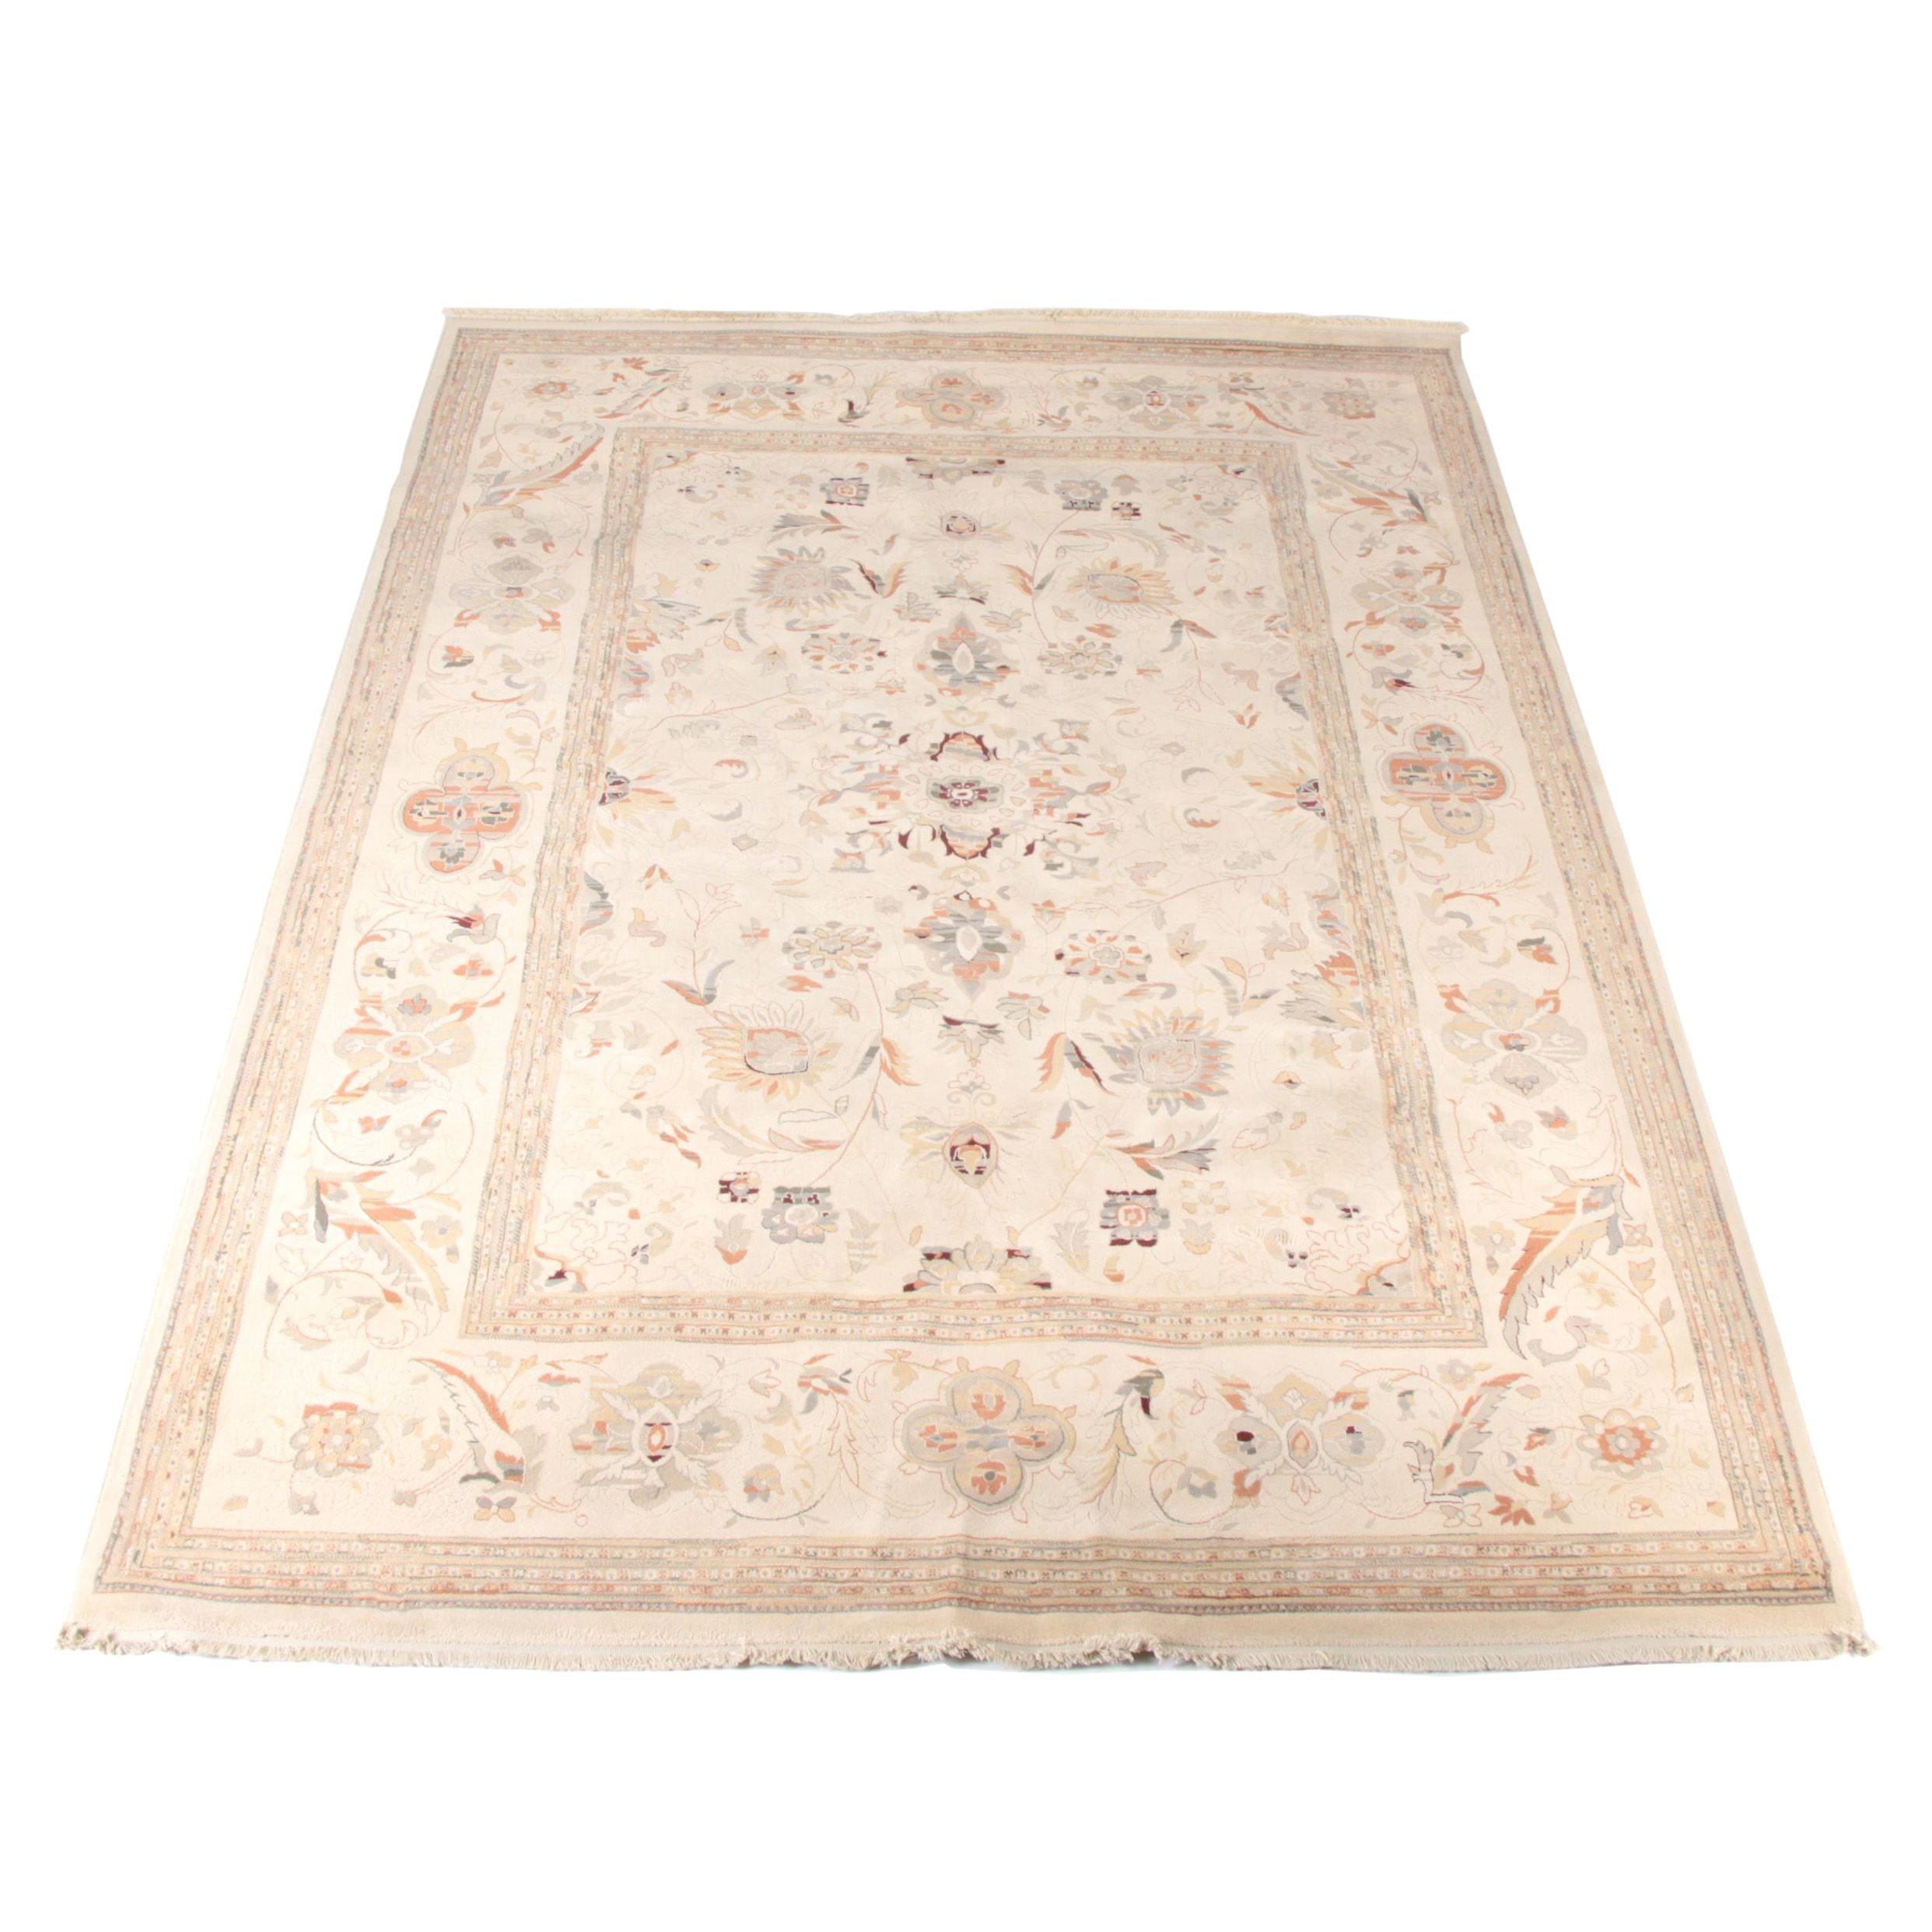 Power-Loomed Peshawar Style Carved Wool Area Rug